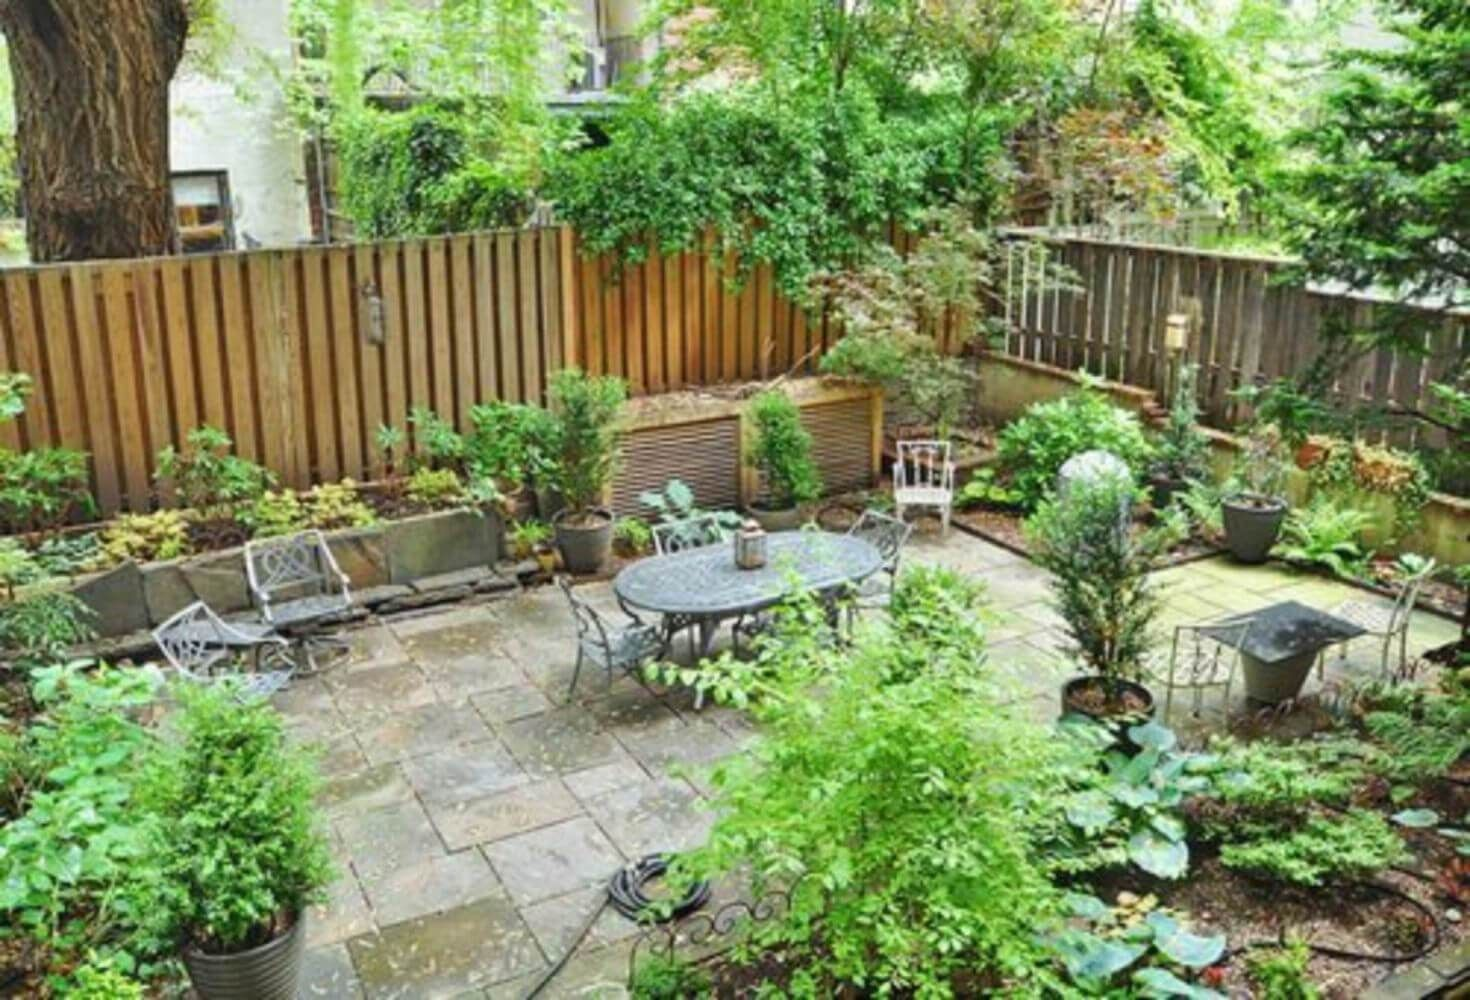 Fenced In Small Backyard Design Townhouse Garden Backyard Garden Layout Small Backyard Landscaping